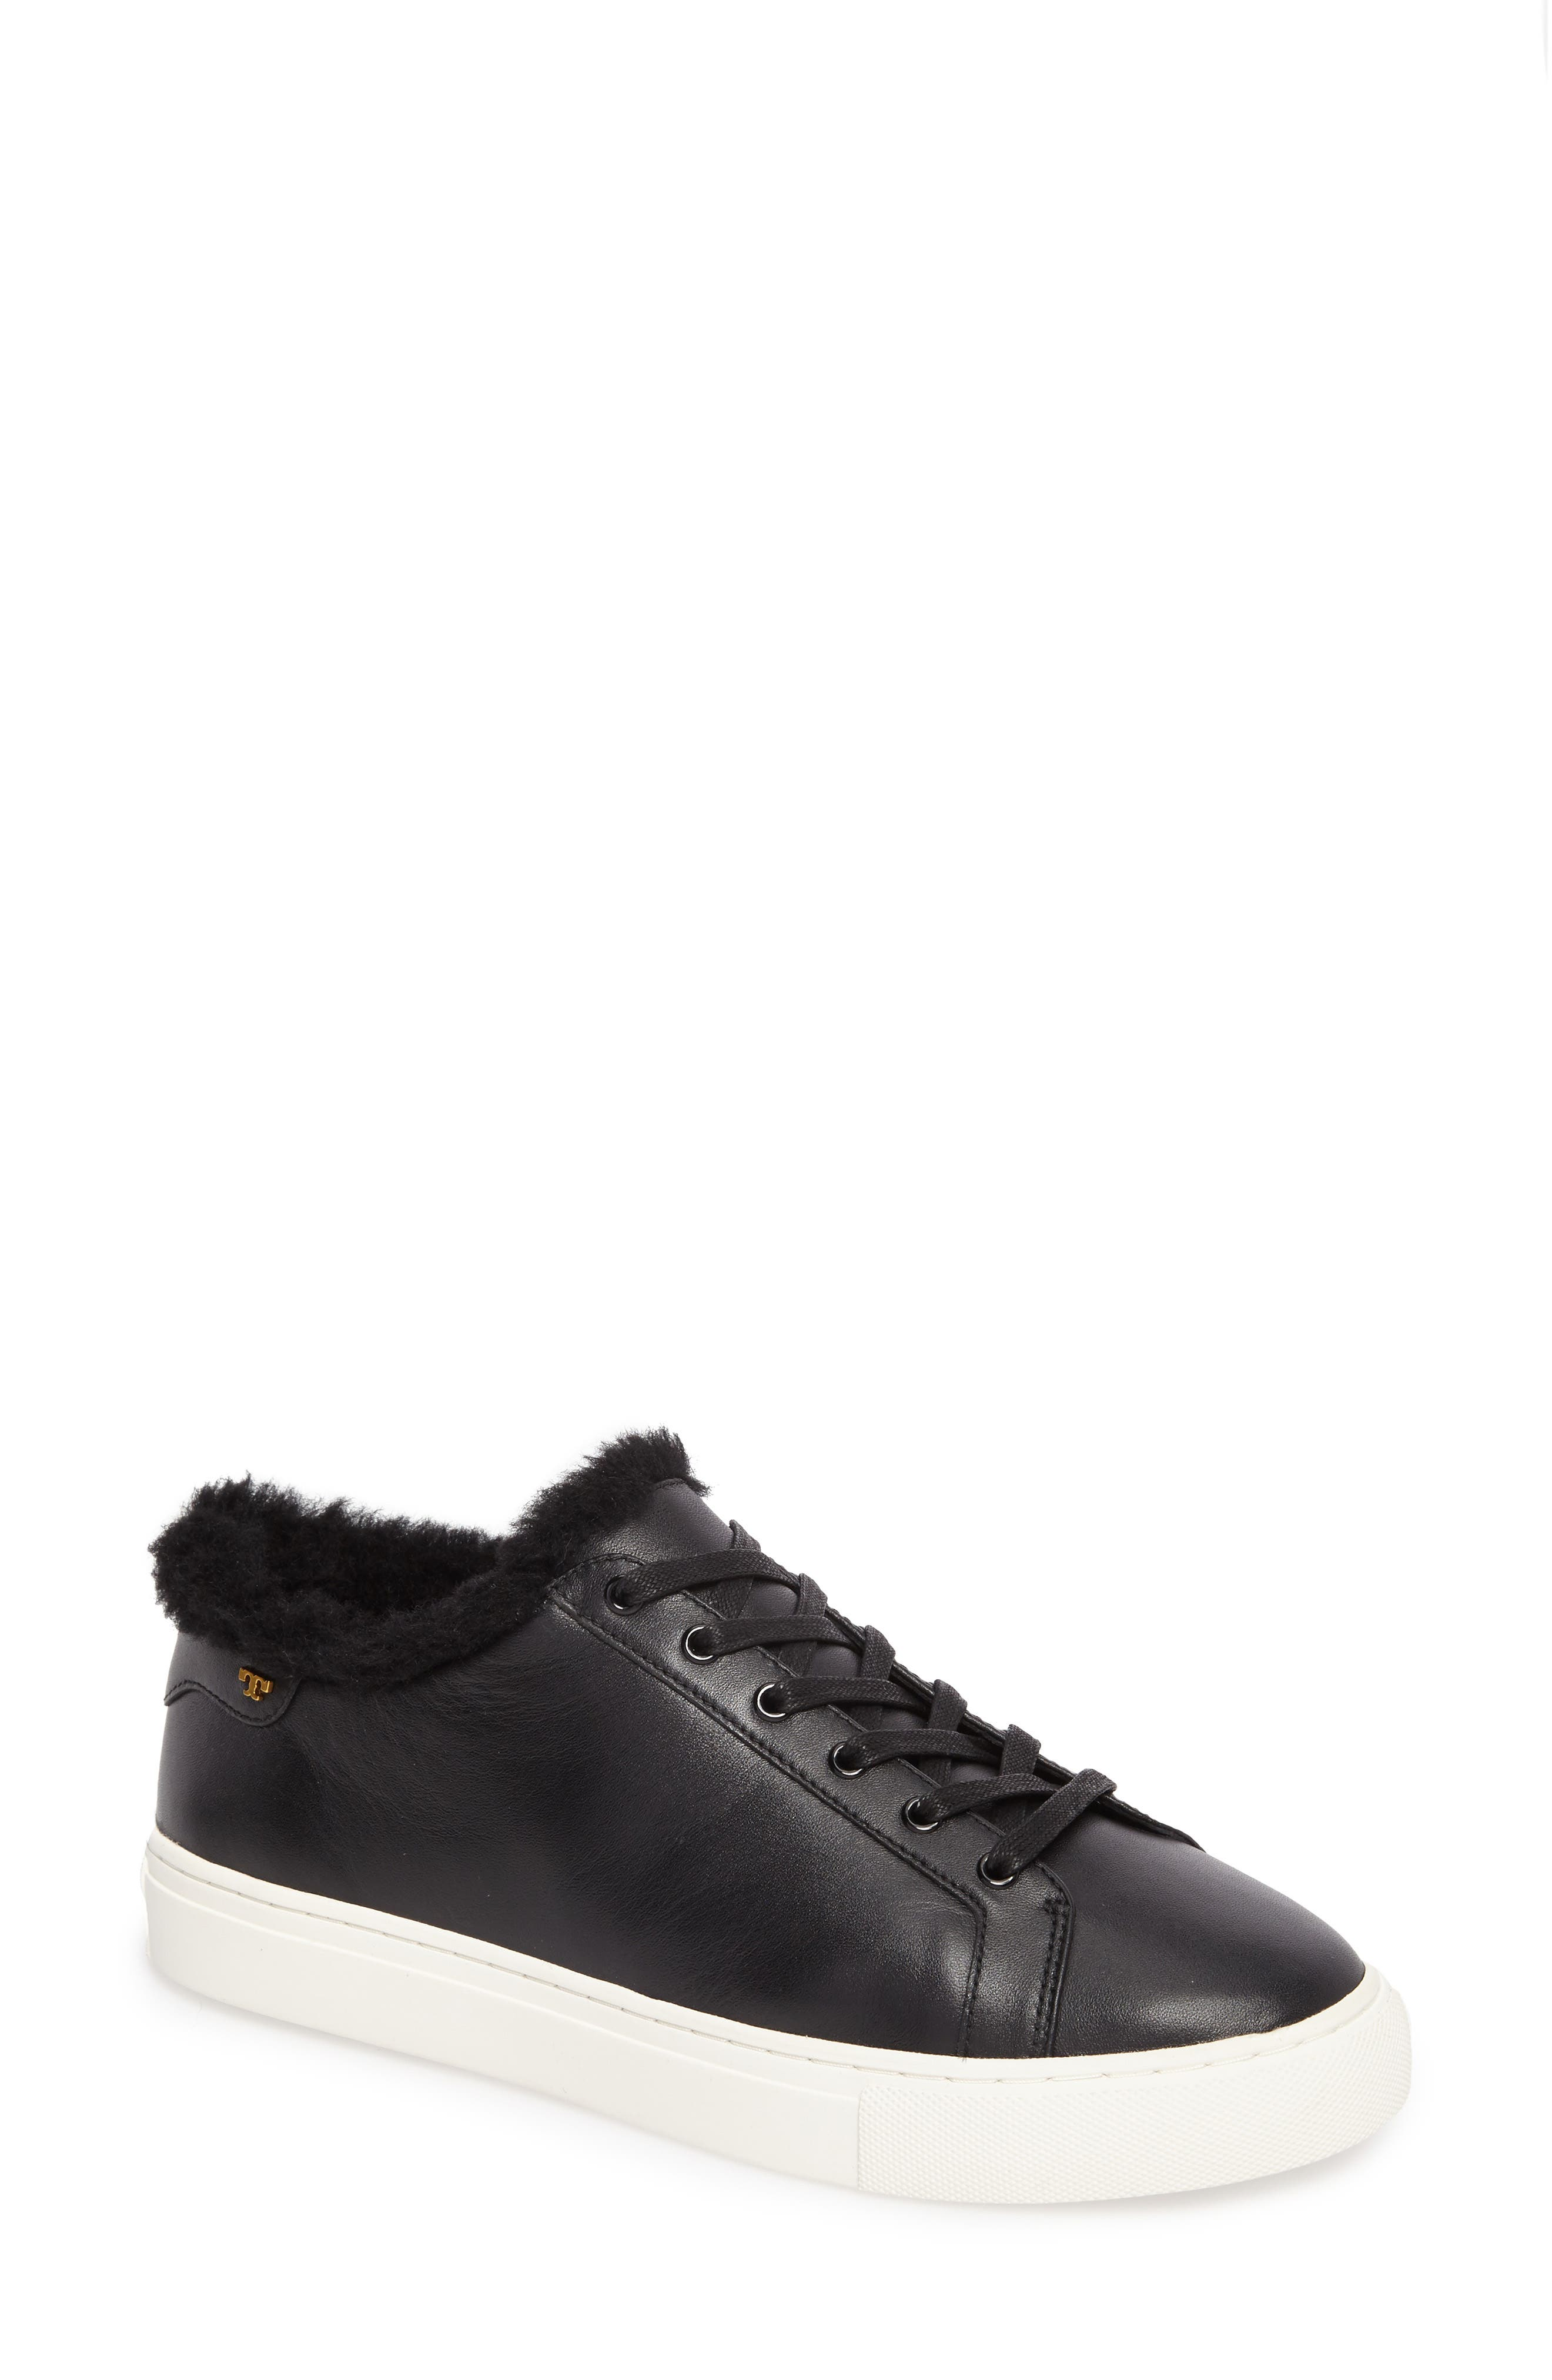 Lawrence Genuine Shearling Lined Sneaker,                             Main thumbnail 1, color,                             001